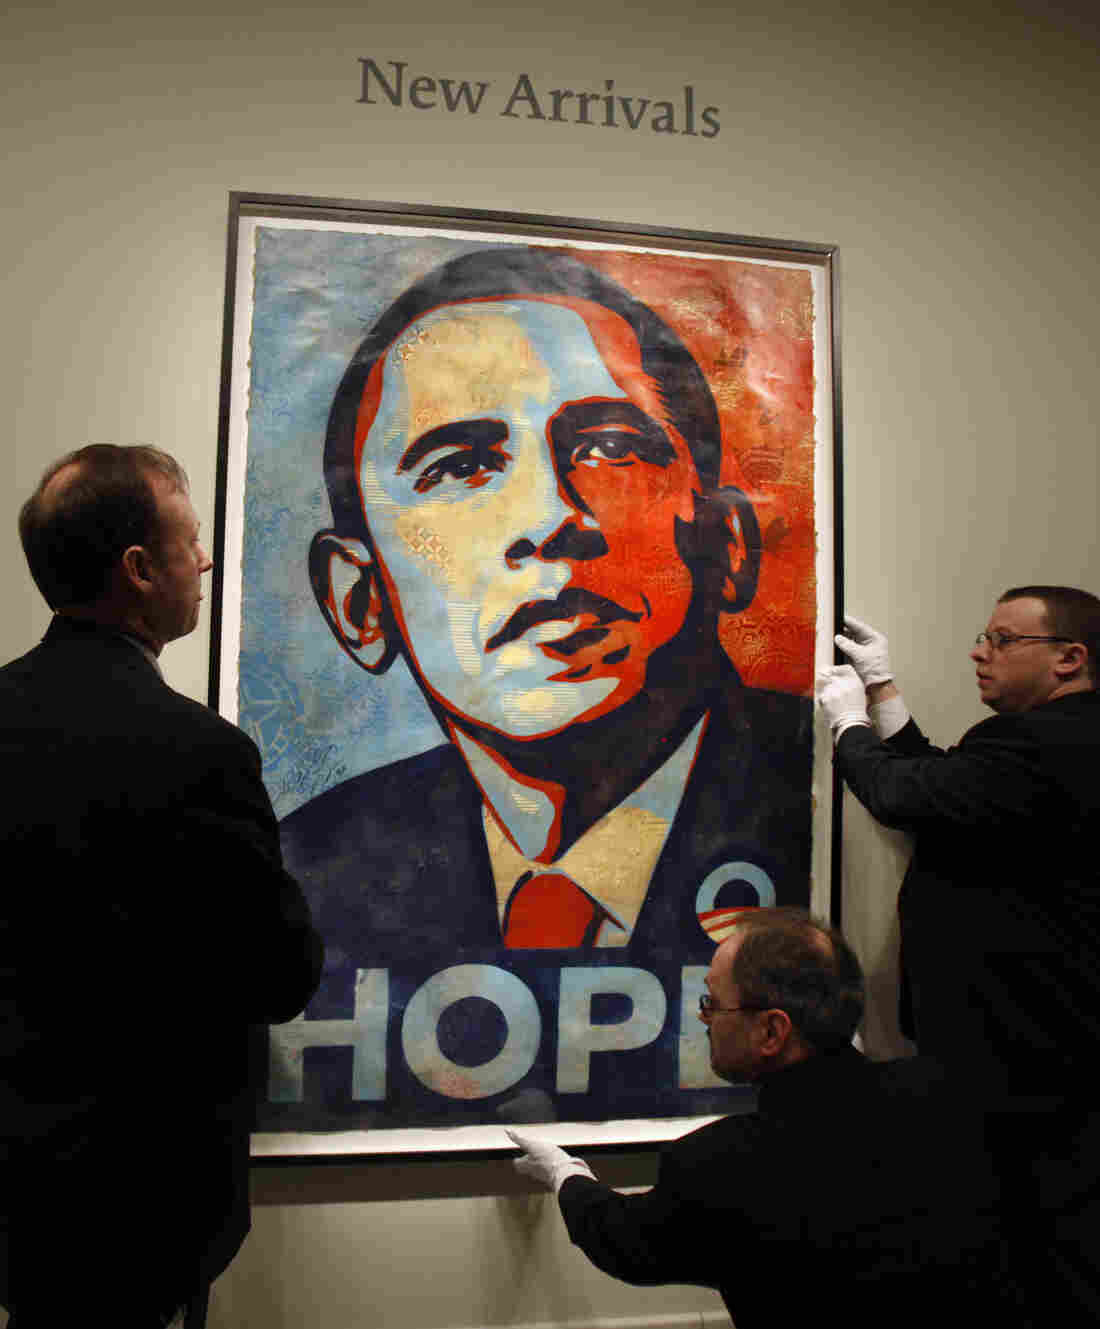 The iconic collage from Obama's 2008 campaign, created by Shepard Fairey, was later installed in the National Portrait Gallery.